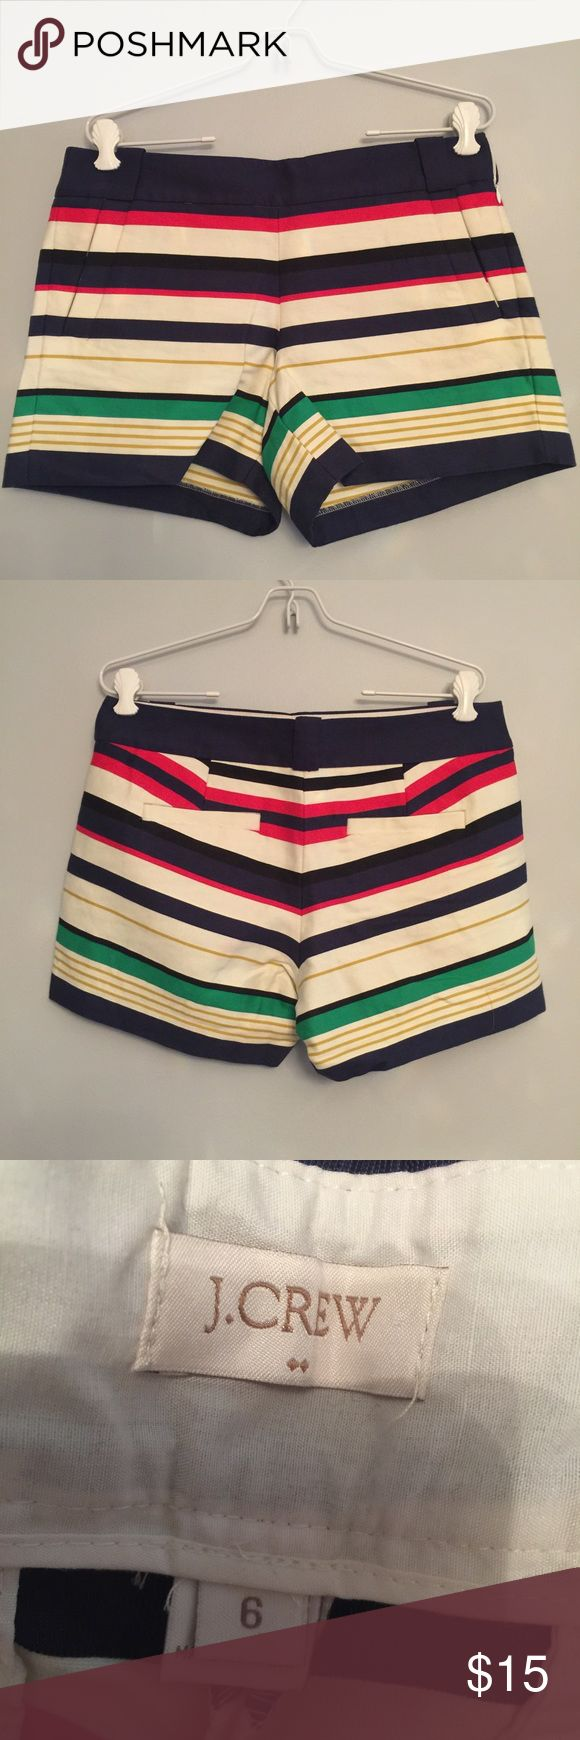 J. Crew striped shorts, size 6 Multi color Shorts in great condition! J. Crew Shorts